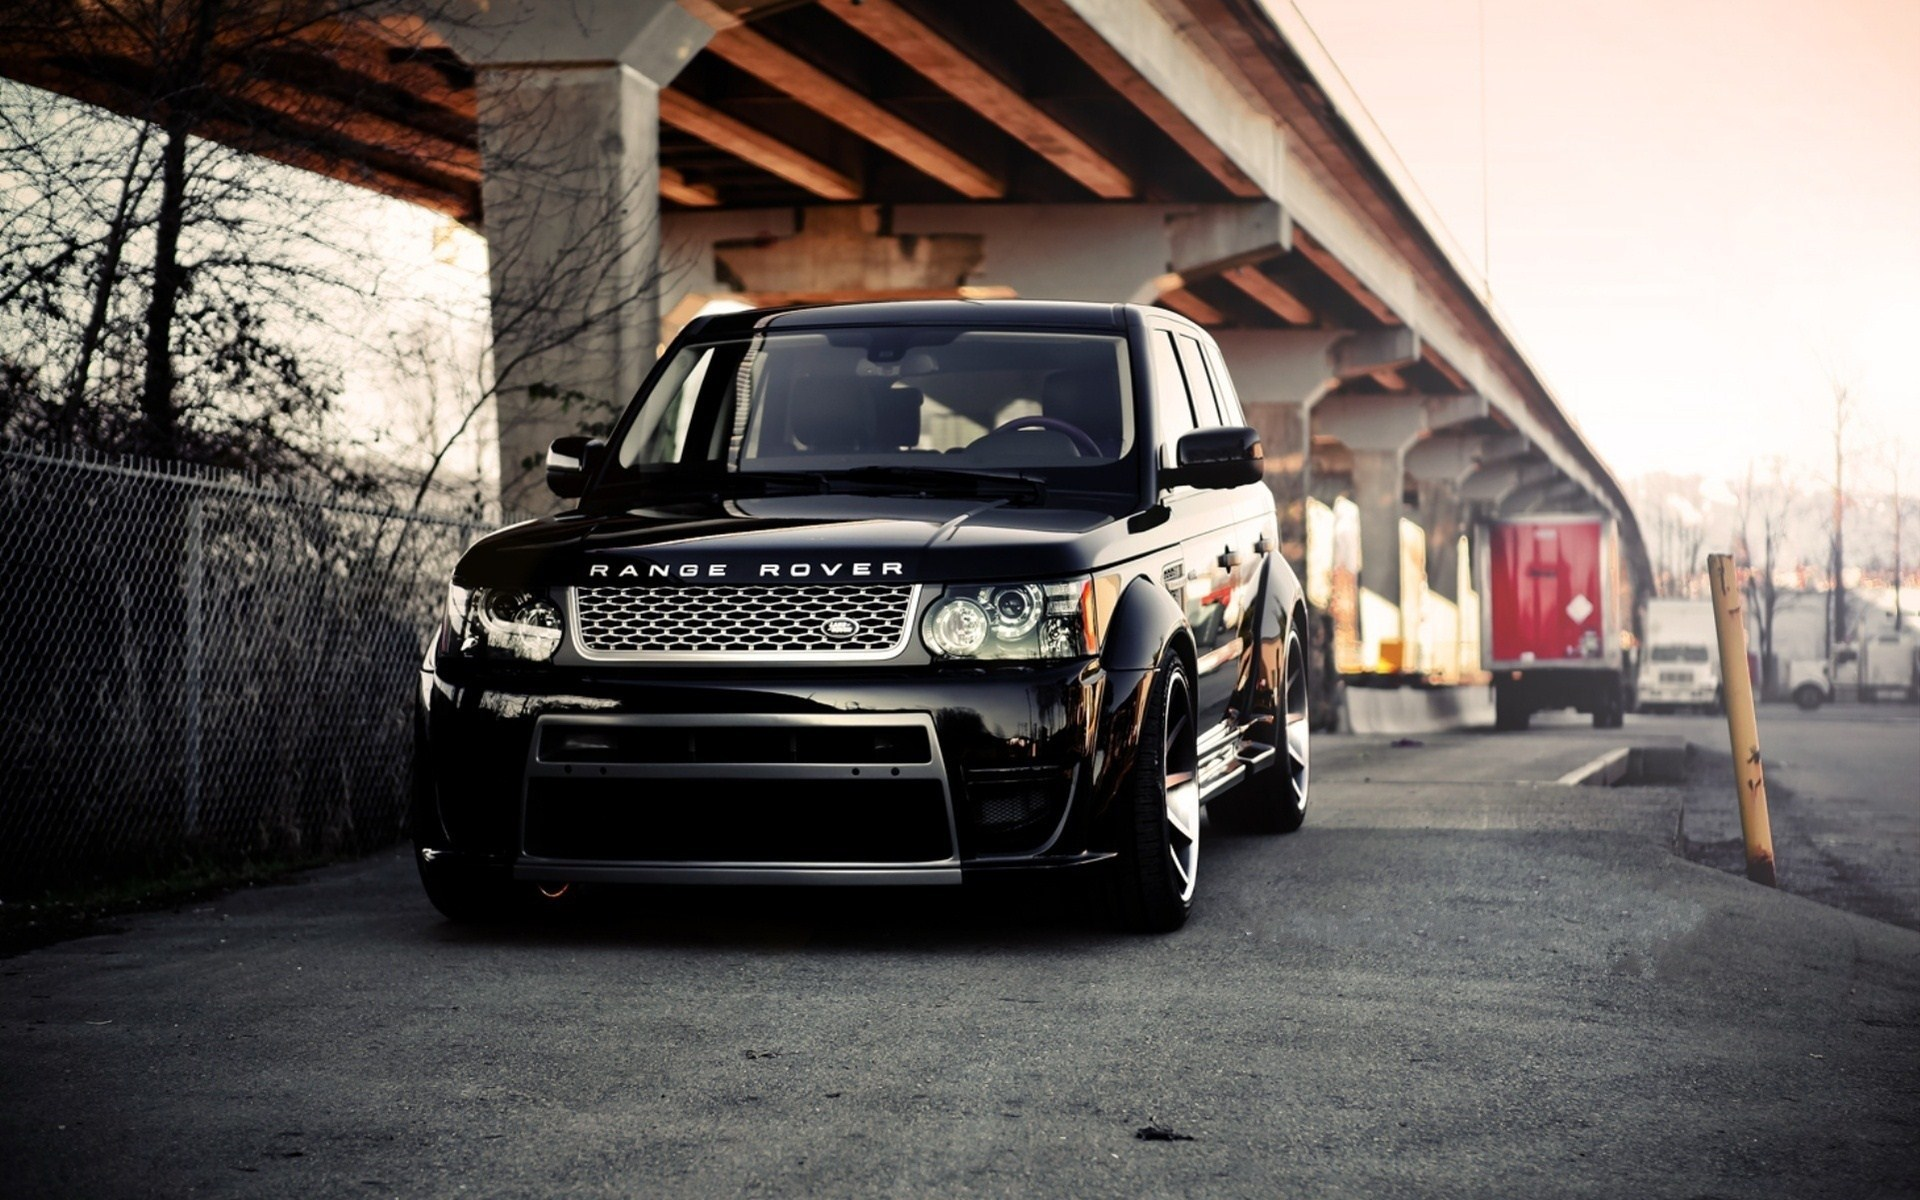 Range Rover Land Rover Car Wheels Tuning